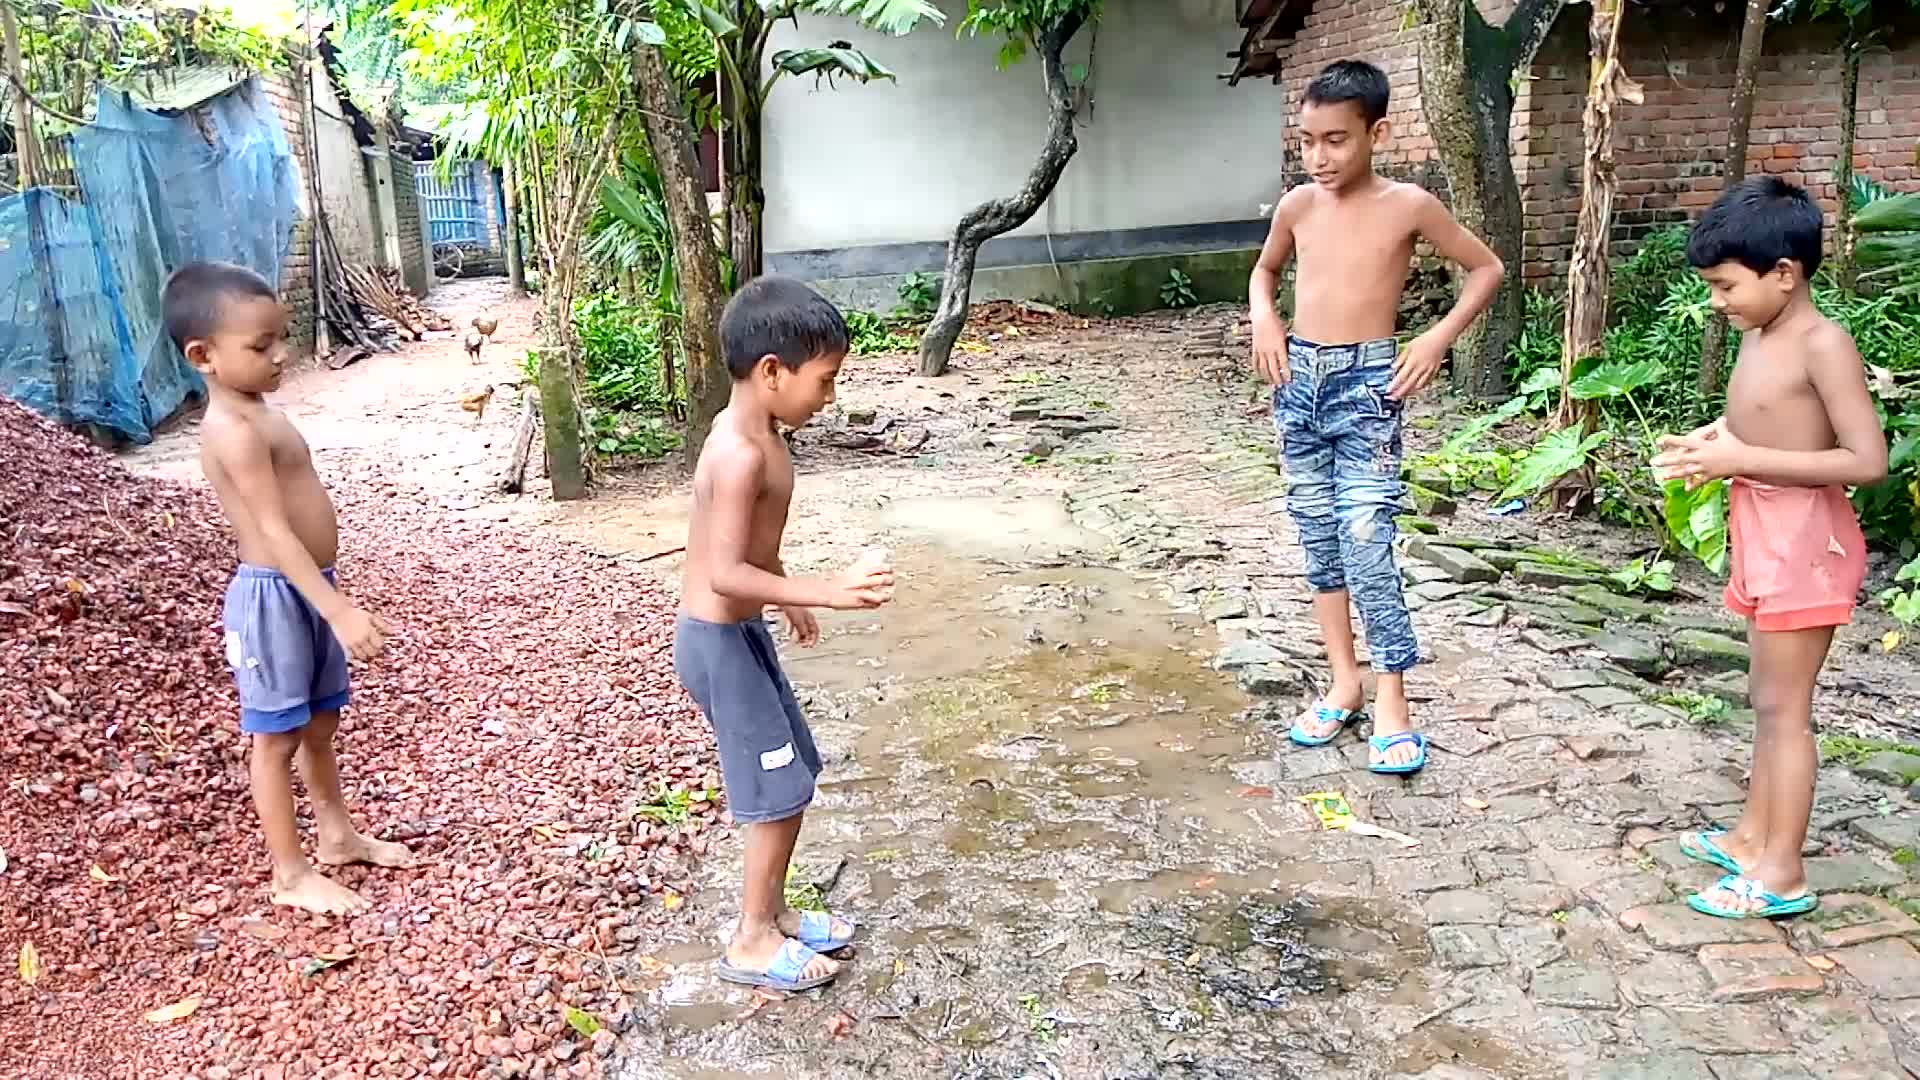 Scenes of children jumping in a rural environment